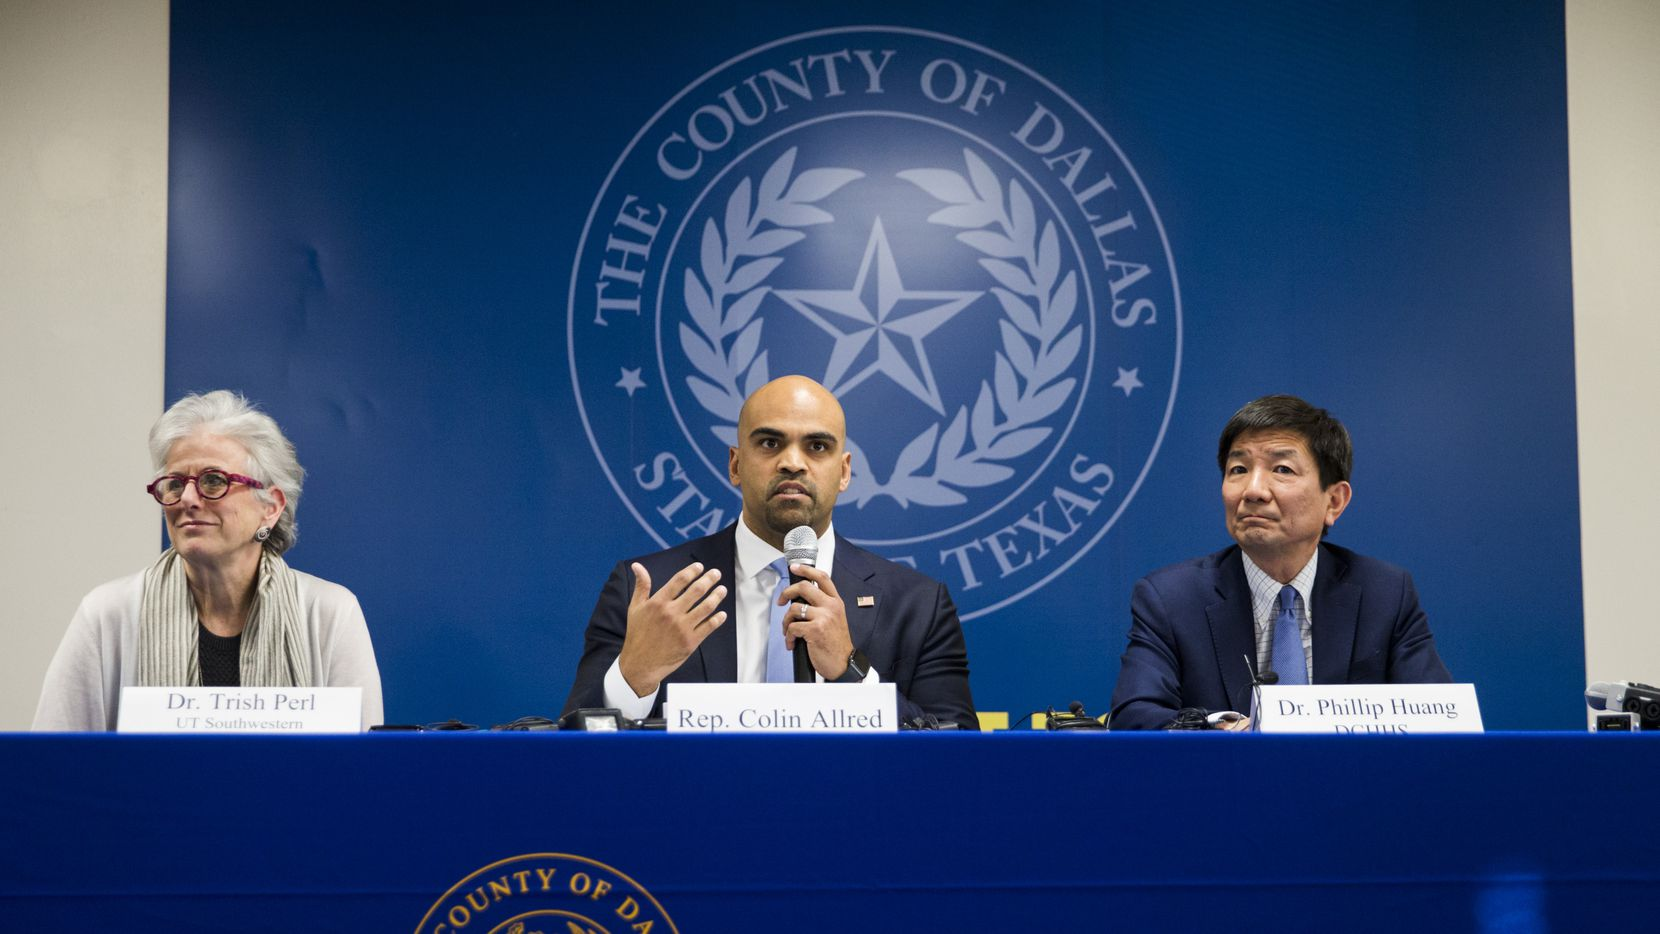 Congressman Colin Allred (TX-32, center) joins Dr. Trish M. Perl (left), the Chief of the Division of Infectious Diseases at UT Southwestern Medical Center, and Dr. Philip Huang, the Director of Dallas County Health and Human Services, discuss how Dallas County is handling Corona Virus on Friday, March 6, 2020 at the Dallas County Health and Human Services Building in Dallas. The talk was moderated by Texas State Senator Nathan